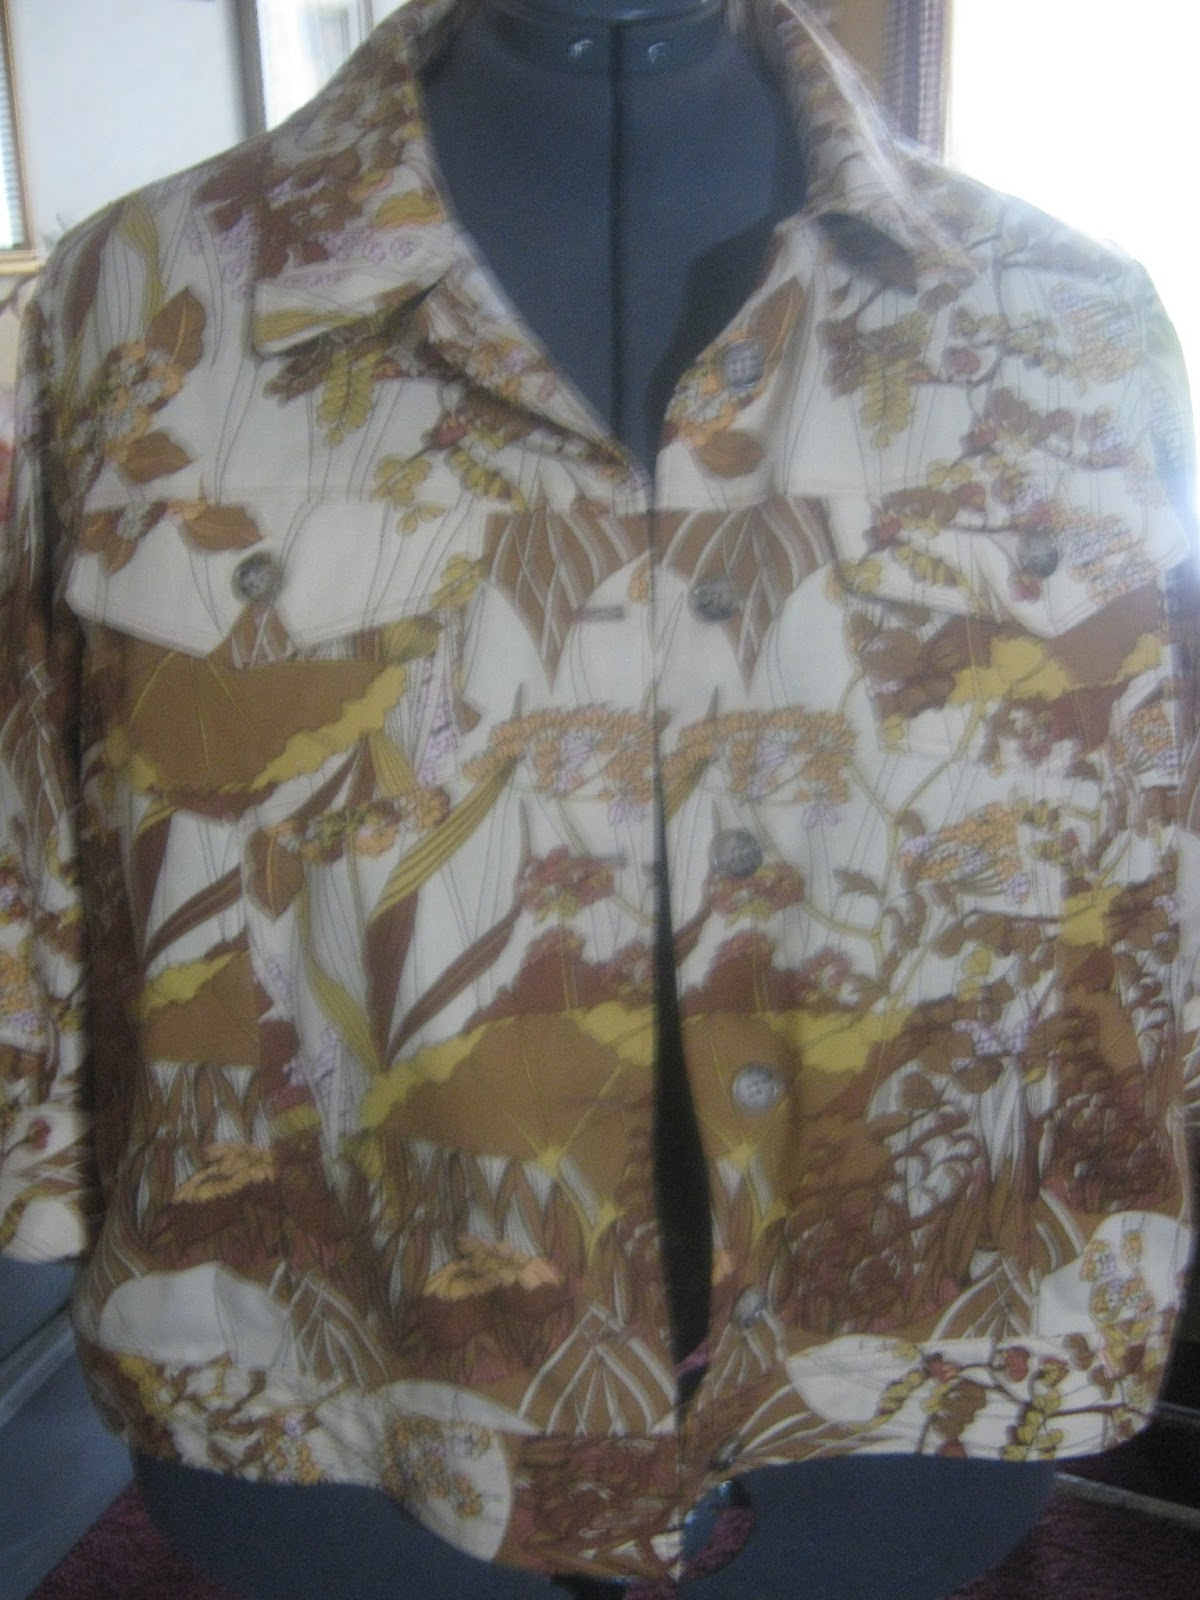 Butterick 5616 Brown Floral Jacket www.sewplus.blogspot.com